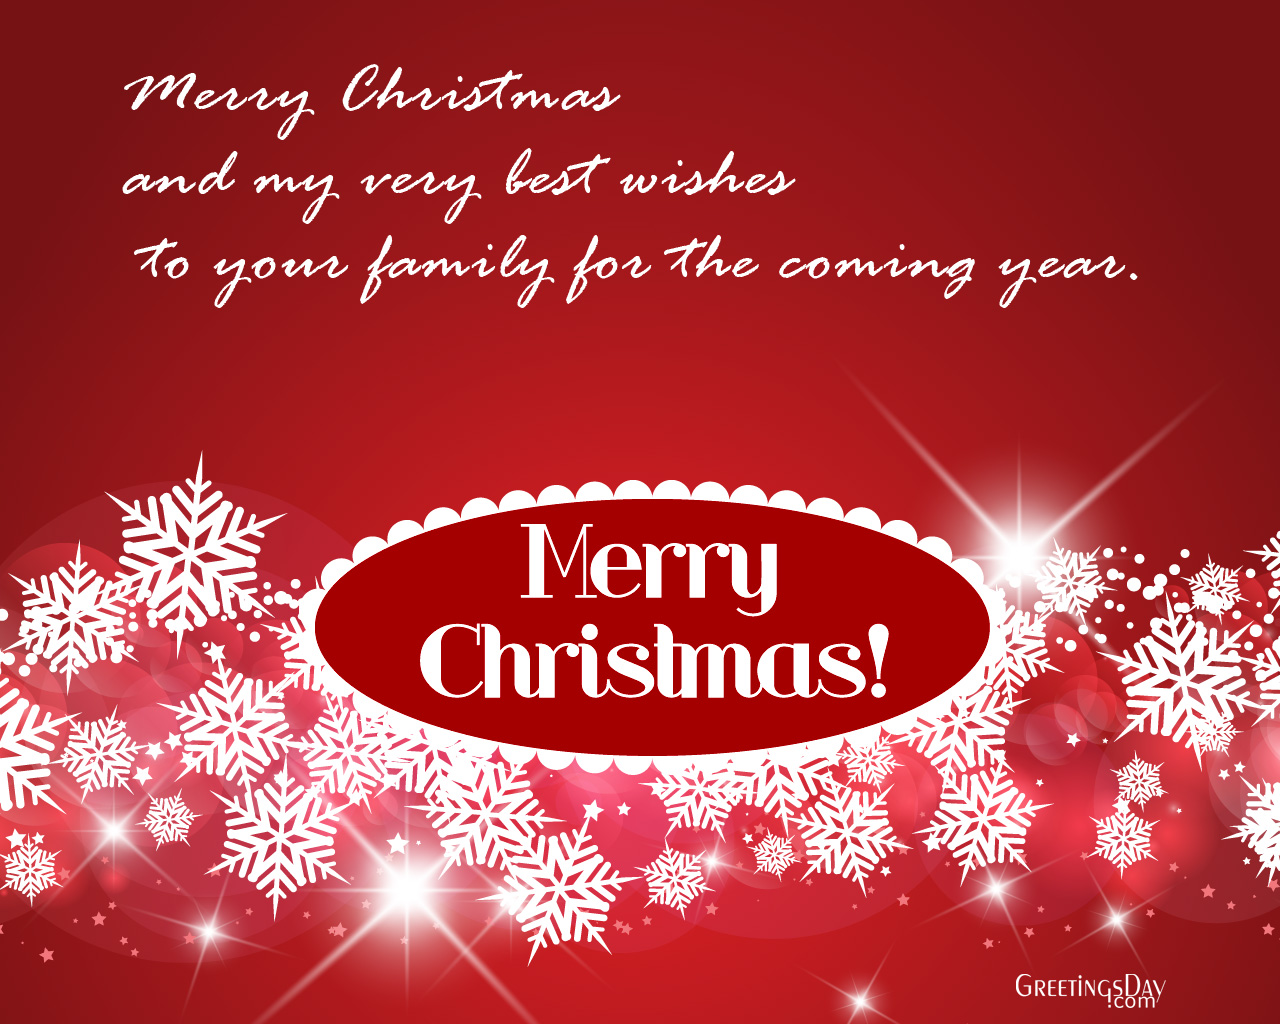 20 christmas greeting cards wishes for facebook friends merry i am sending my christmas wishes to you all i hope you have a happy time with friends and family kristyandbryce Images